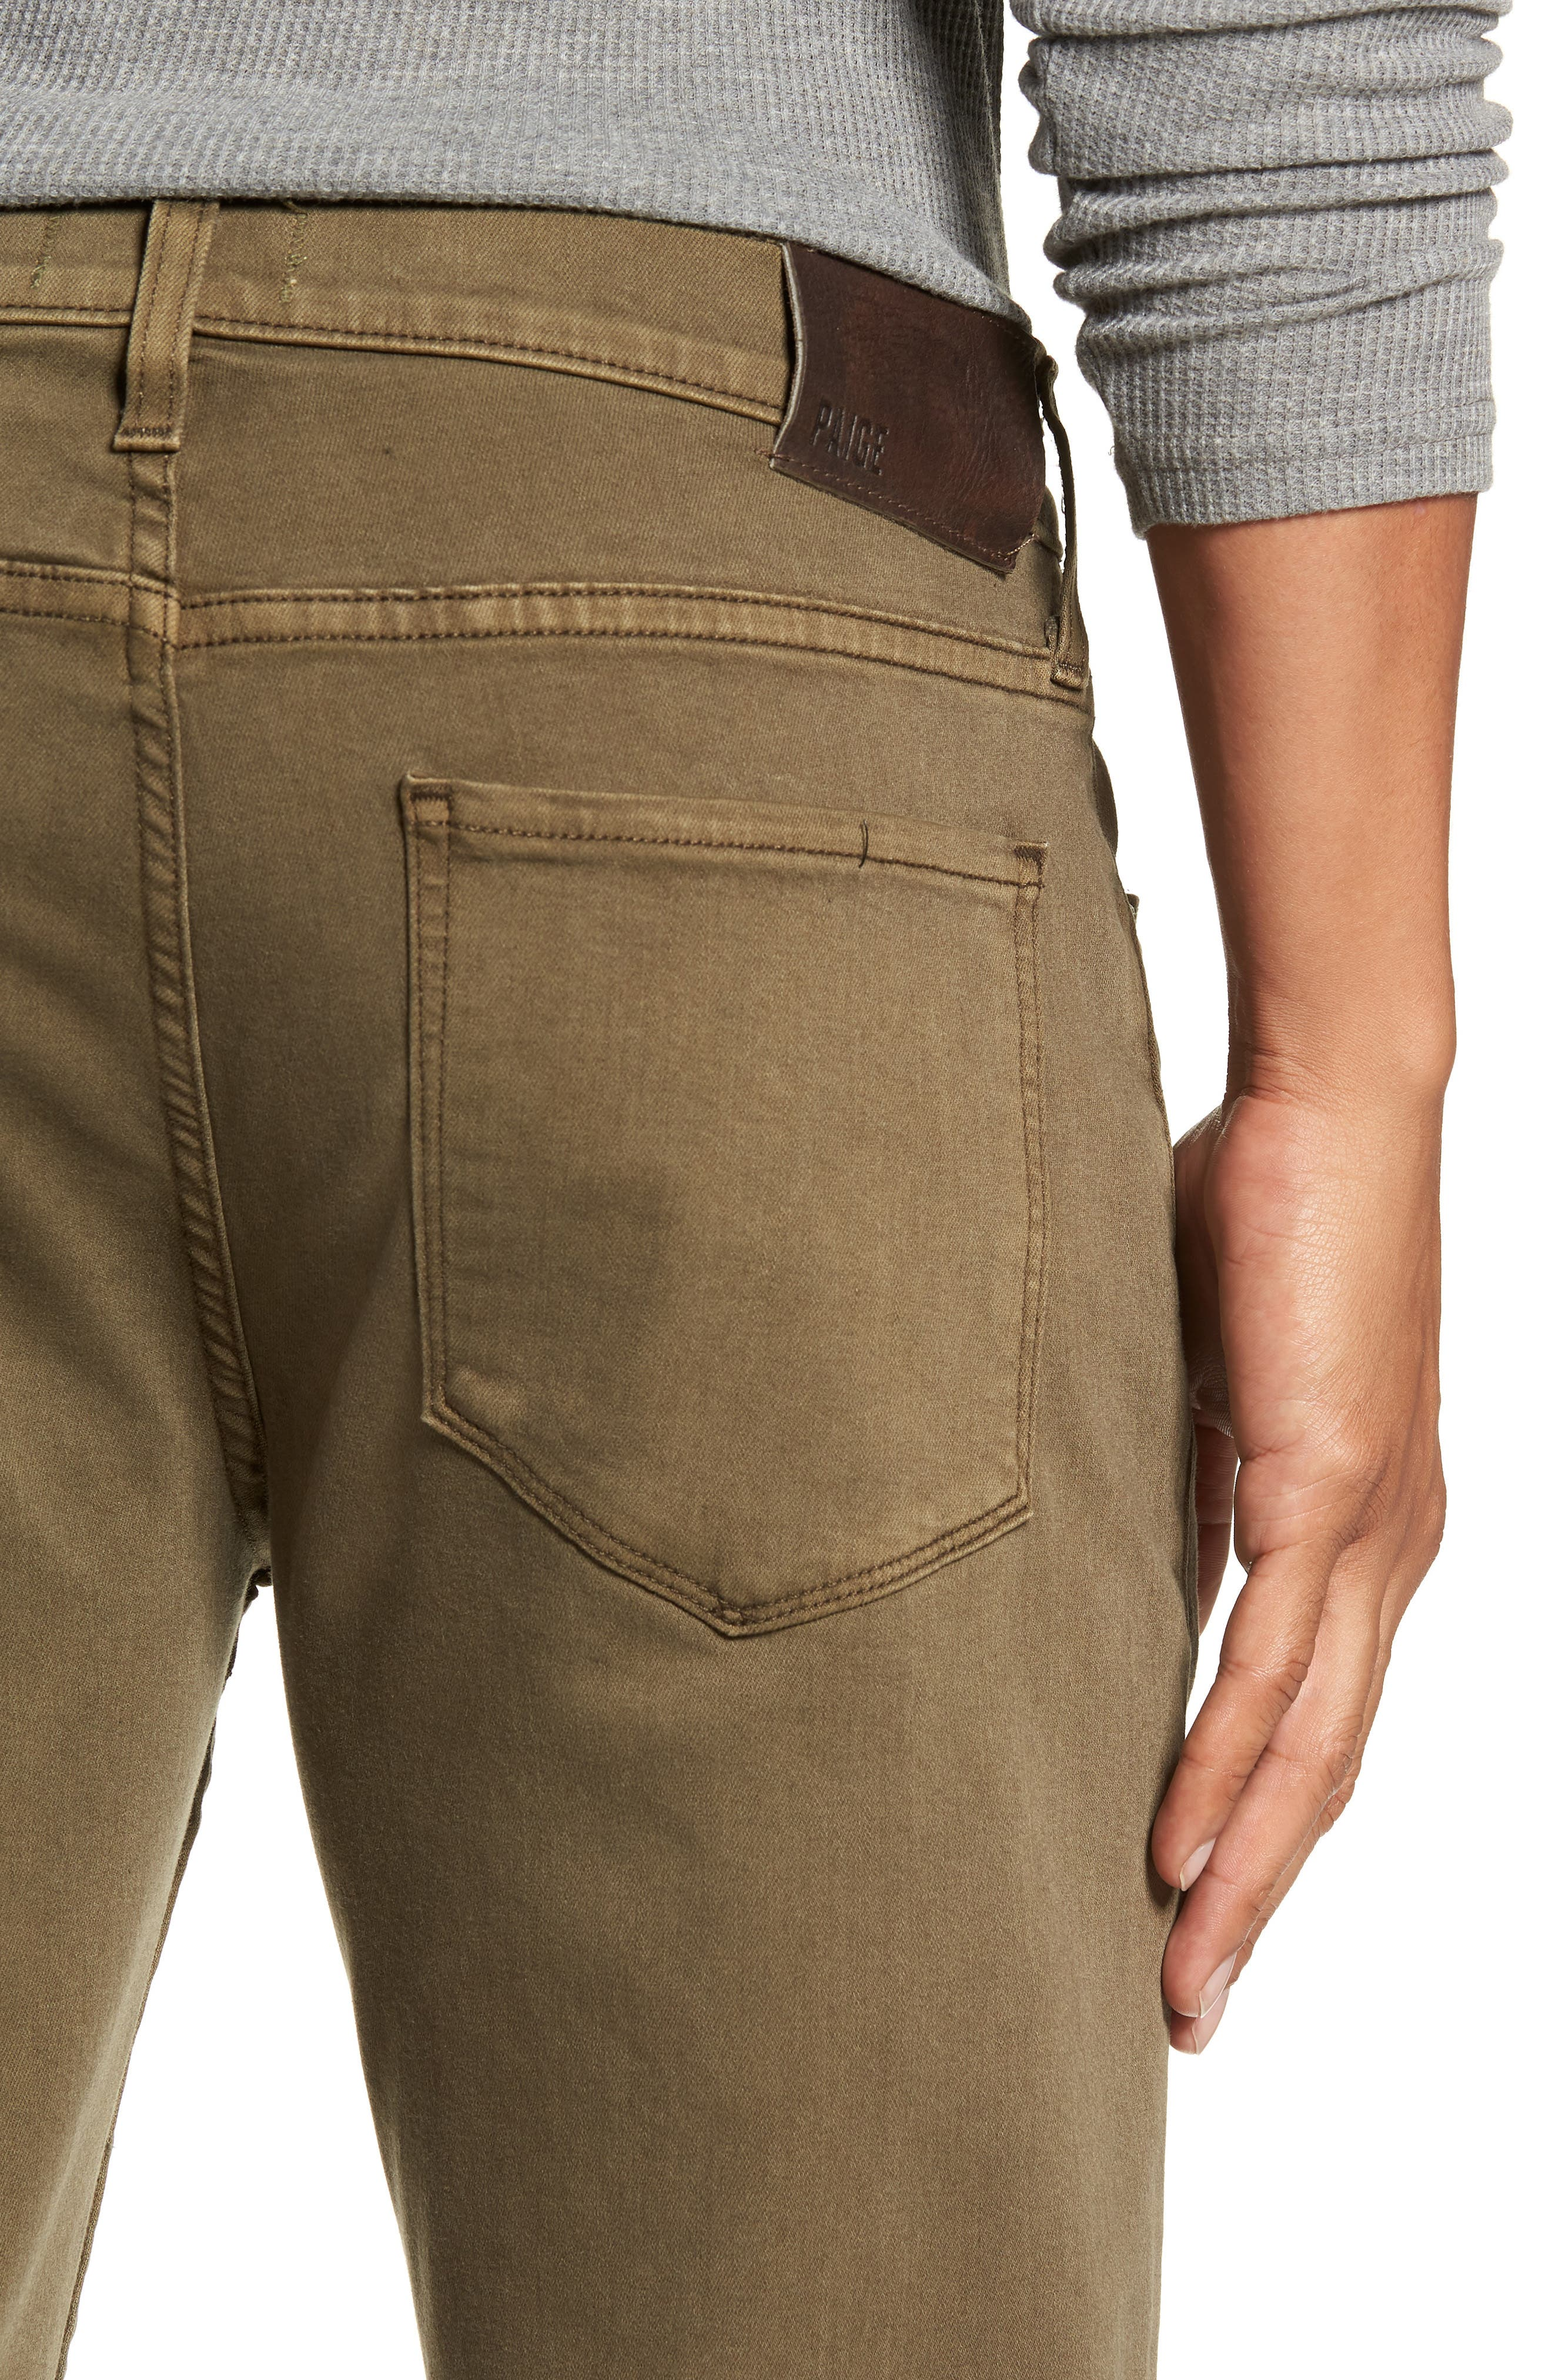 Transcend - Normandie Straight Leg Jeans,                             Alternate thumbnail 4, color,                             VINTAGE ARTICHOKE